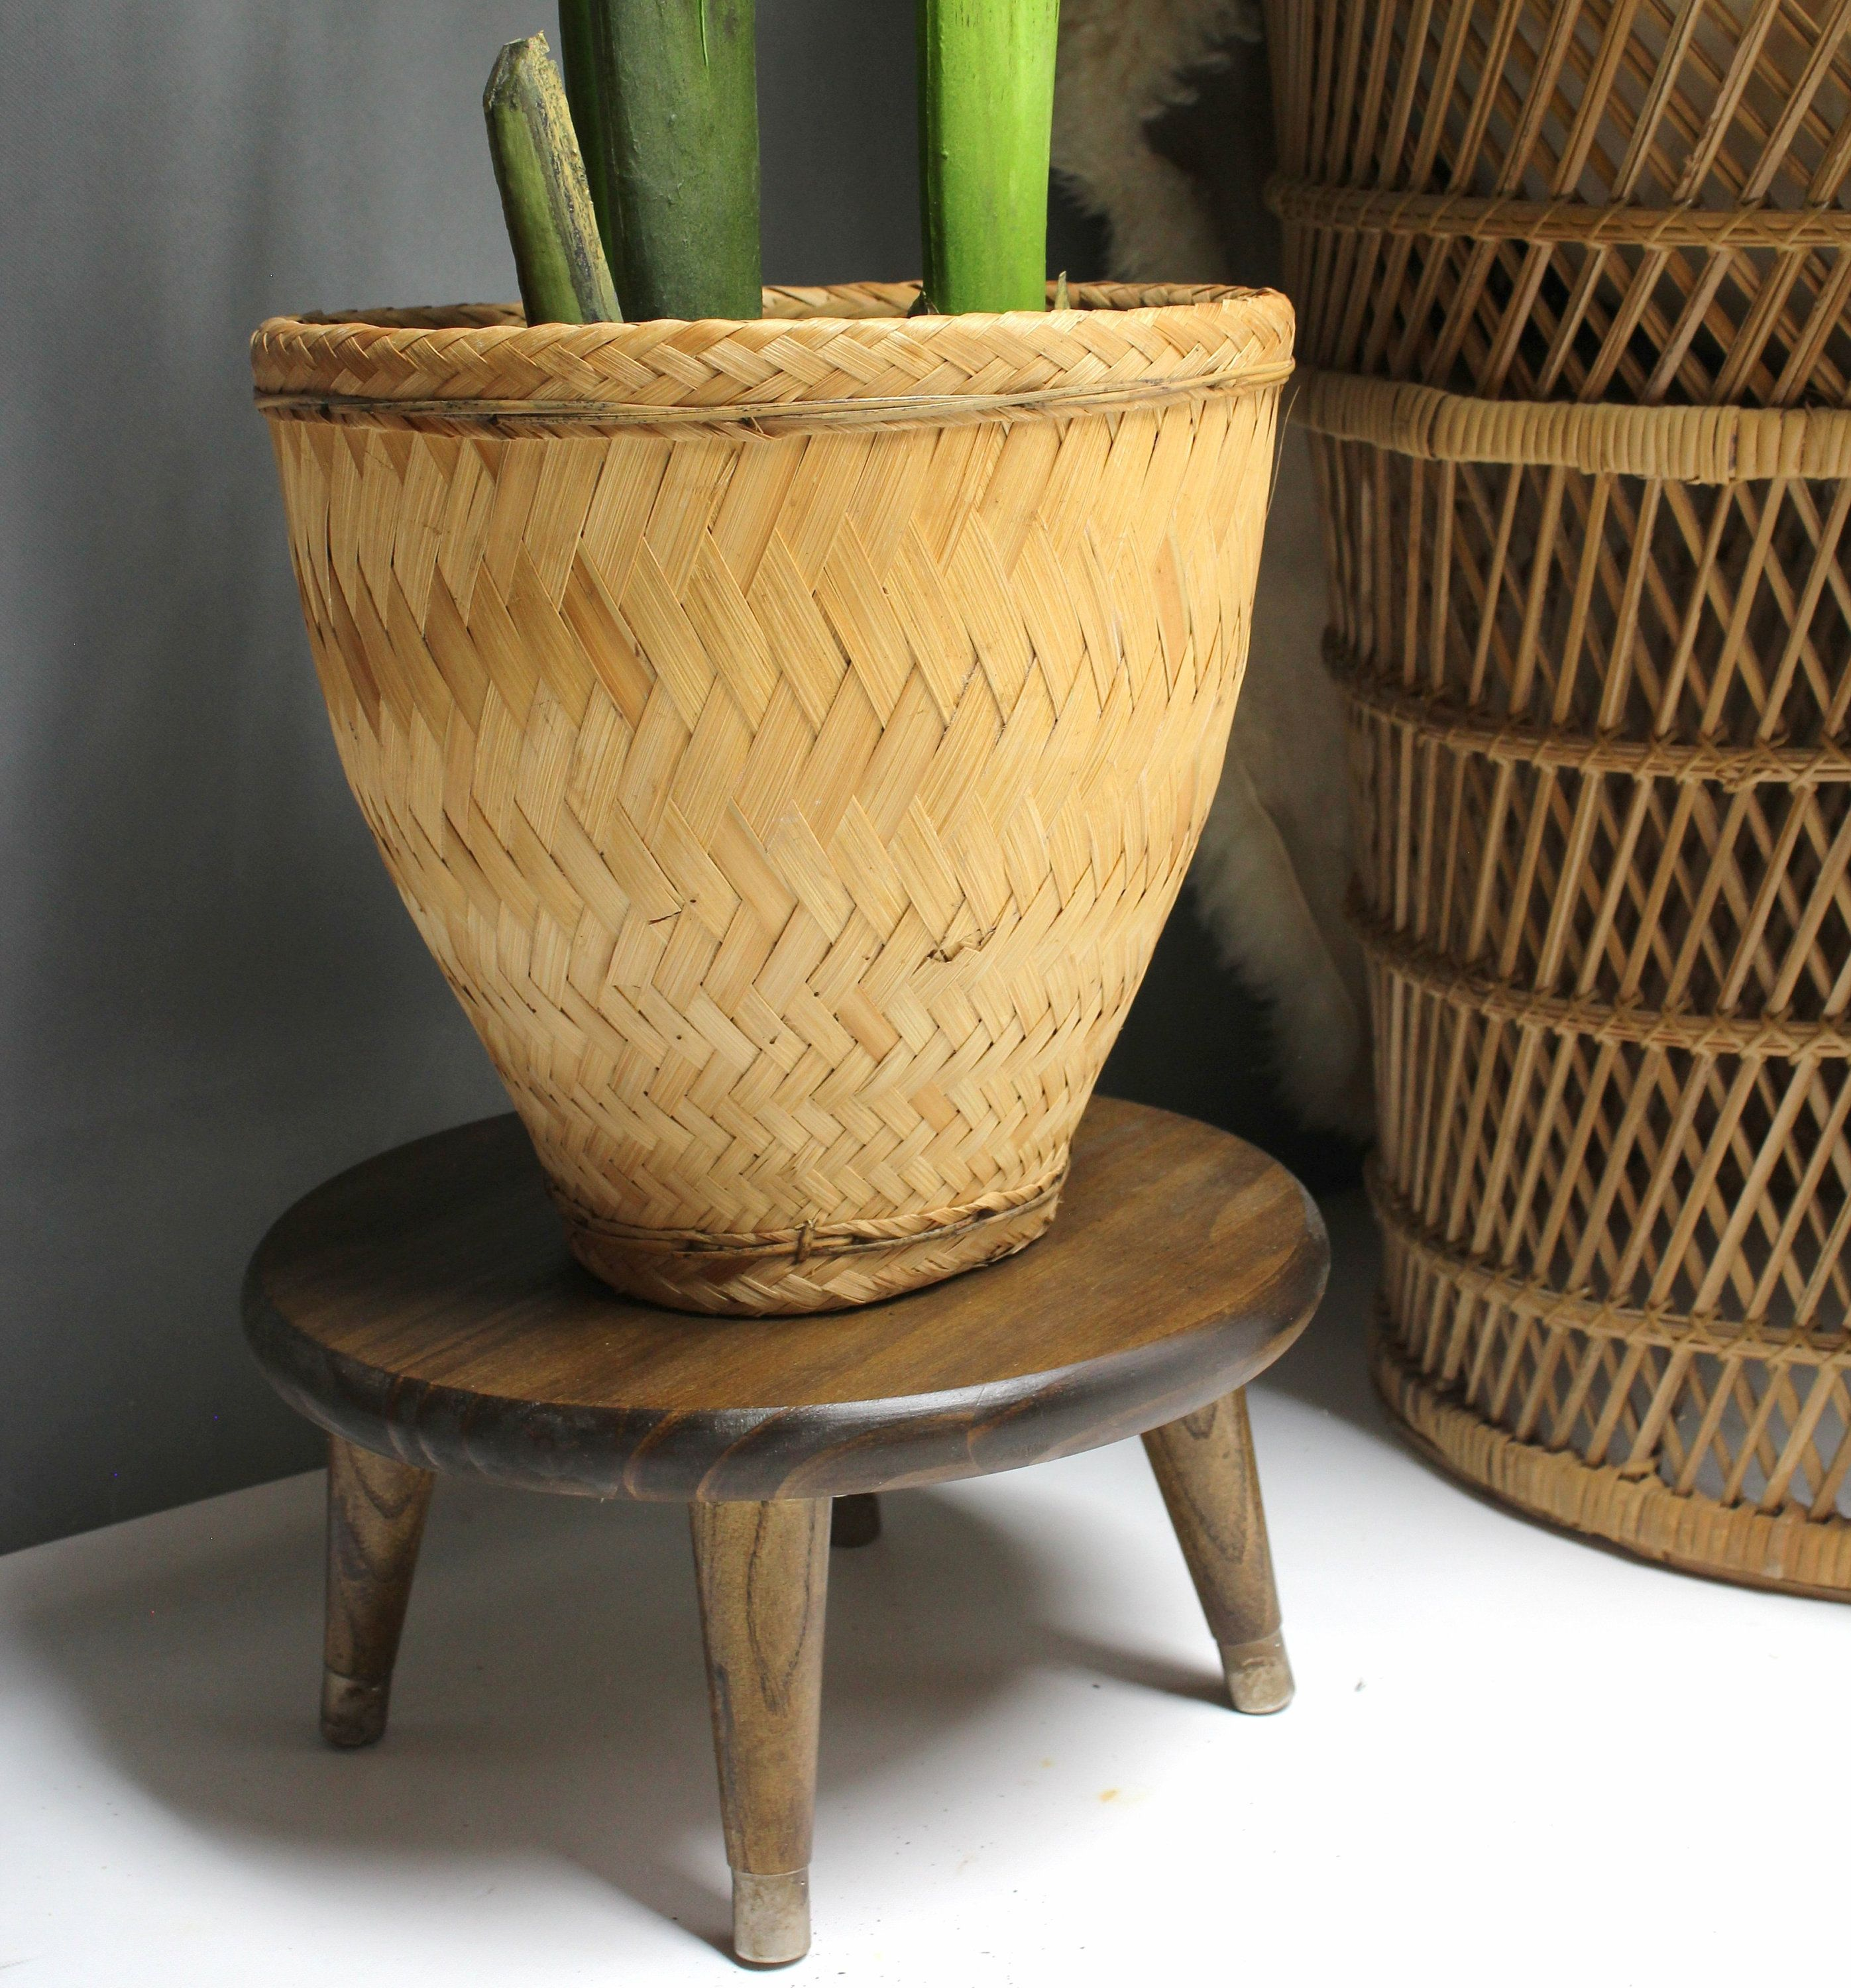 12 Inch Plant Stand With 6 Inch Legs Plant Stand Planter Pots Bowl